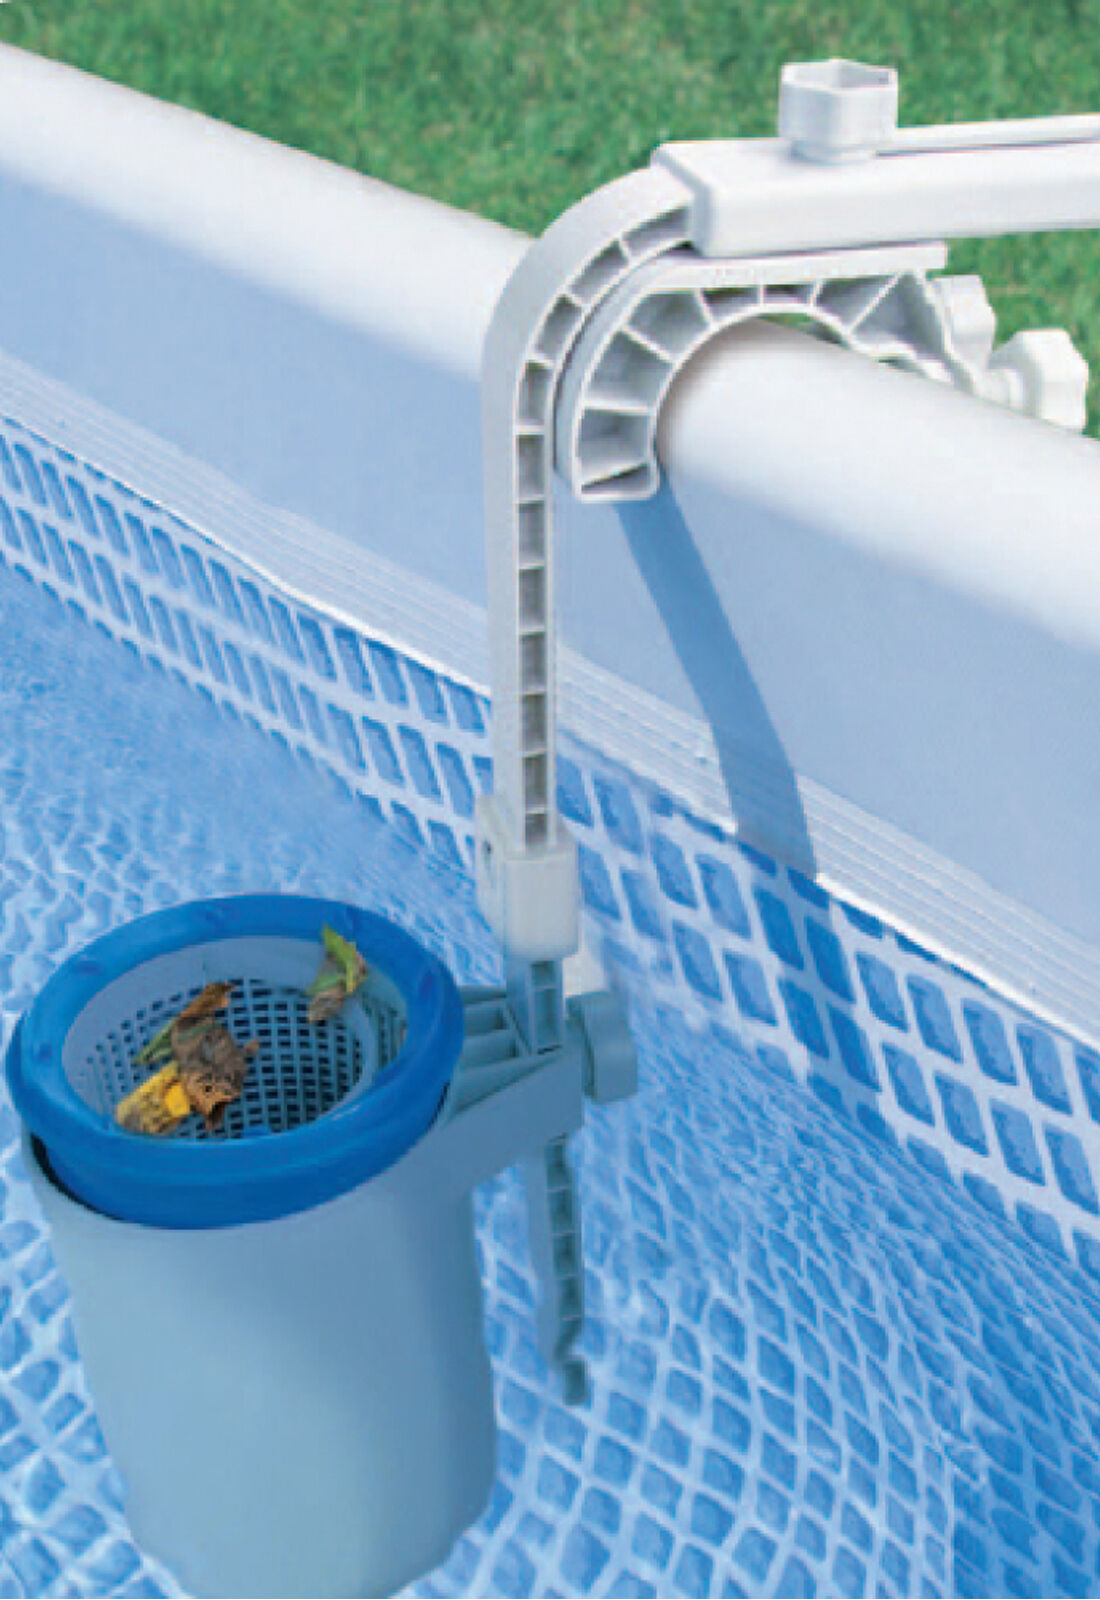 Skimbi above ground swimming pool surface skimmer for - Swimming pool skimmer basket covers ...